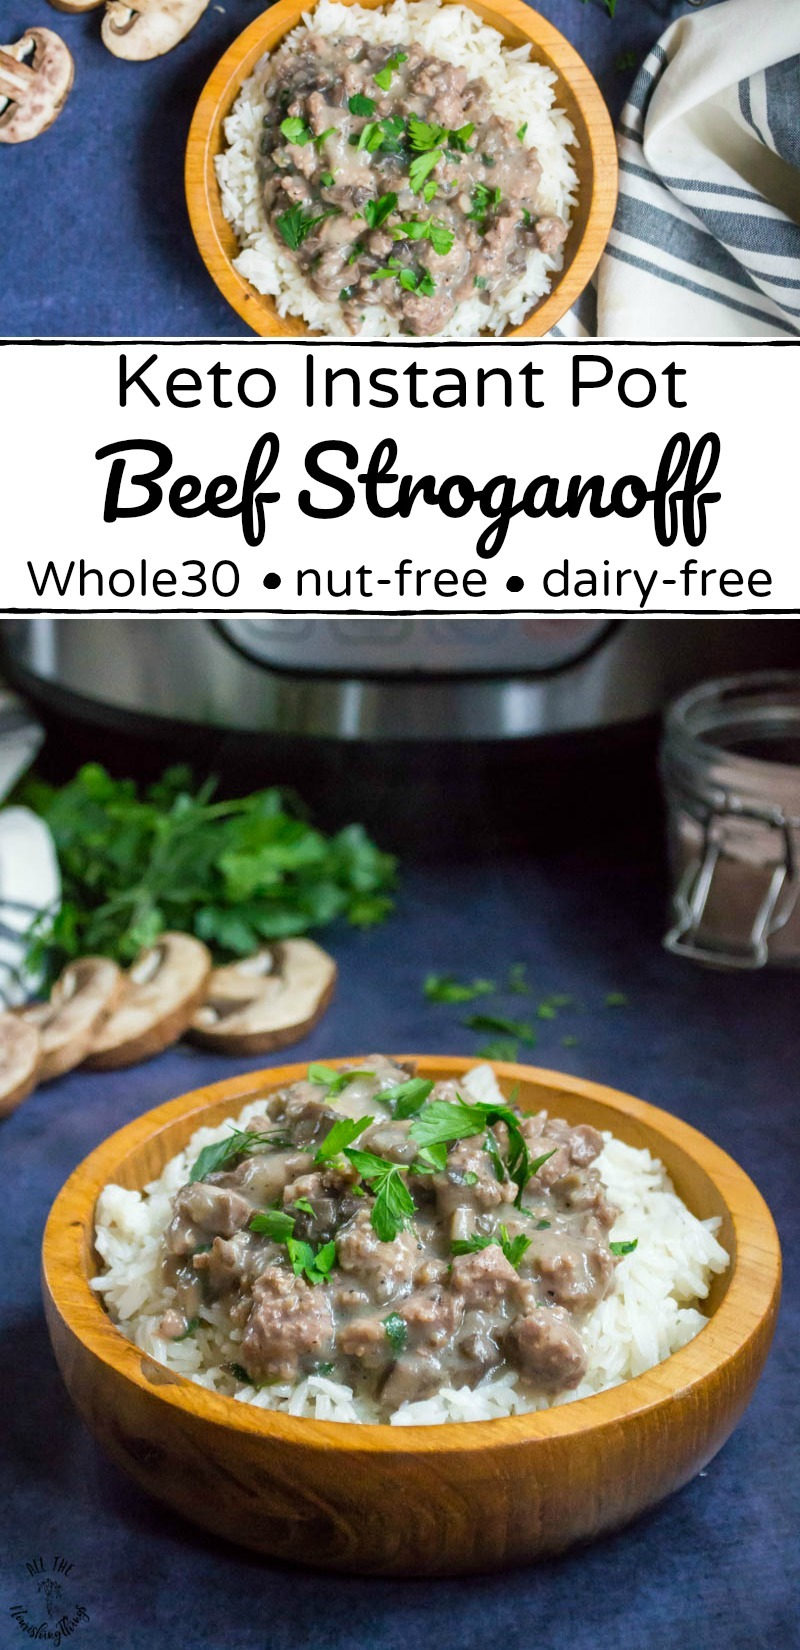 collage of 2 images of whole30 and keto instant pot beef stroganoff with text overlay between the images